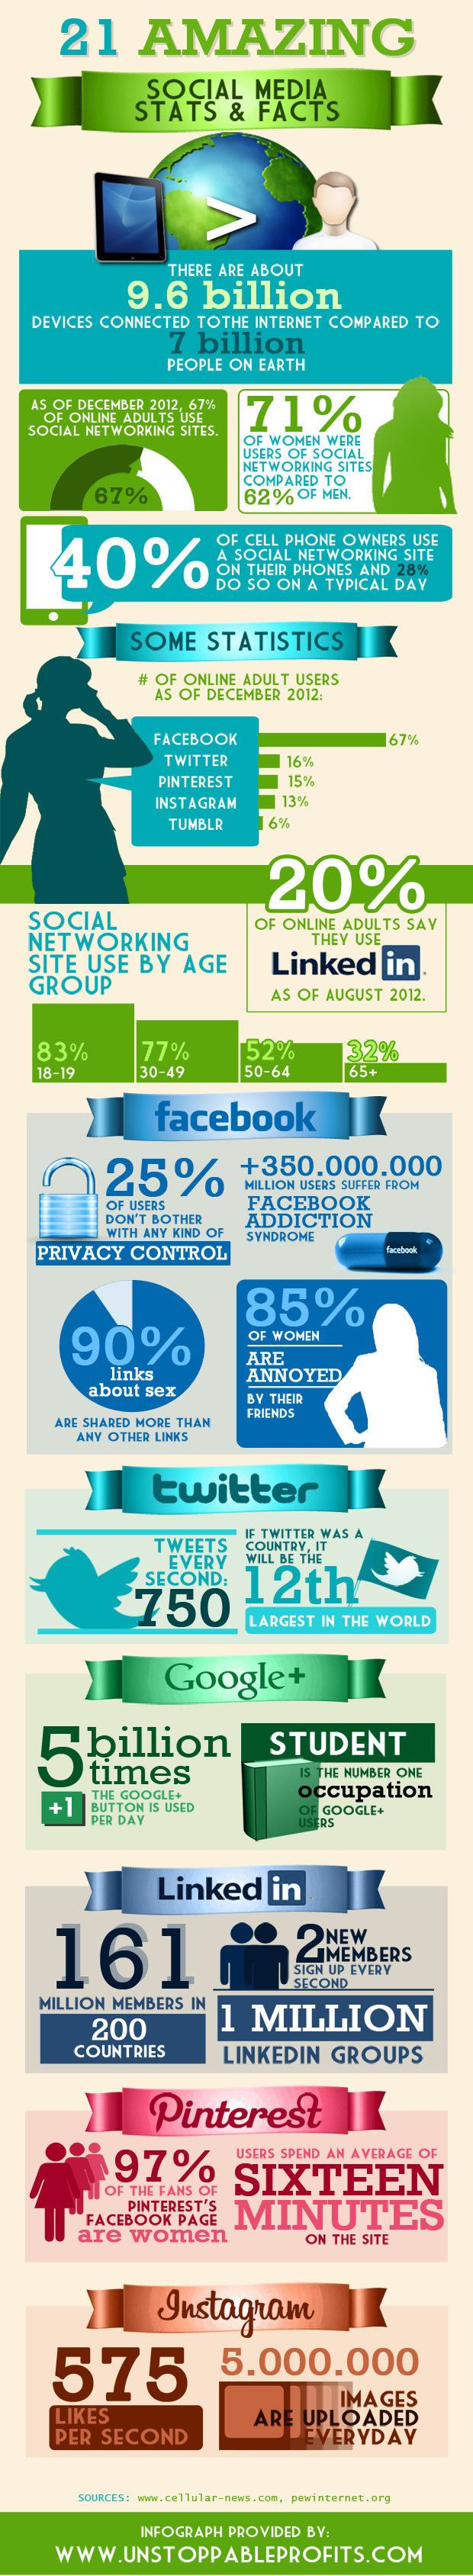 #Stats on #socialmedia use: 750 tweets are posted every second. #infographic